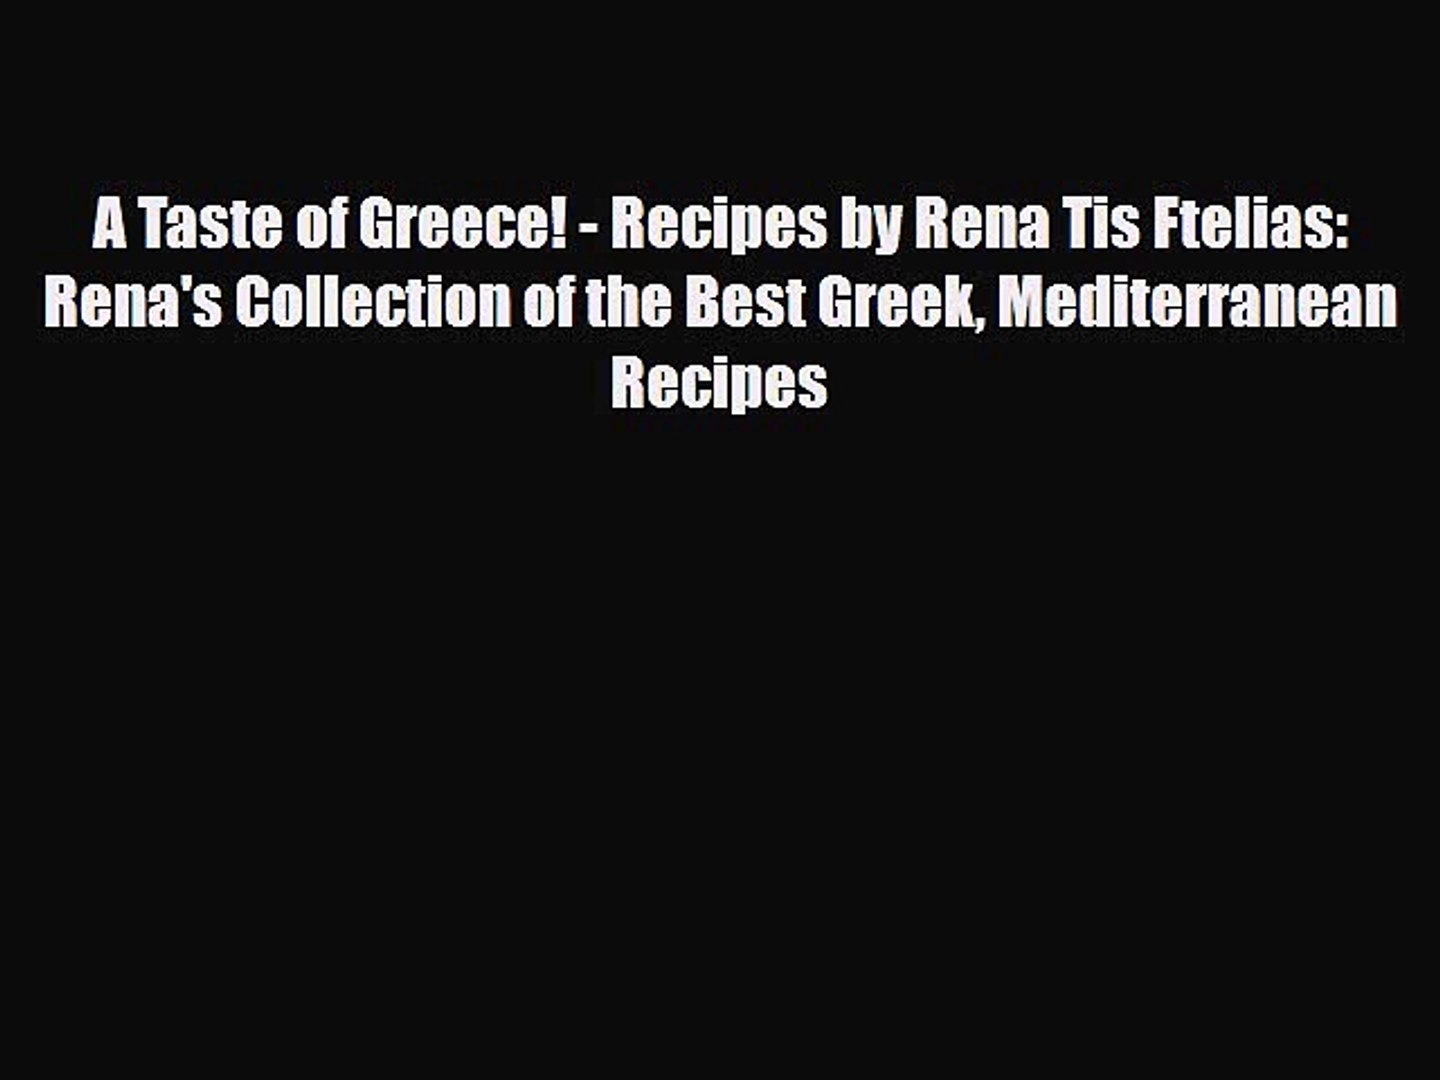 [PDF] A Taste of Greece! - Recipes by Rena Tis Ftelias: Rena's Collection of the Best Greek